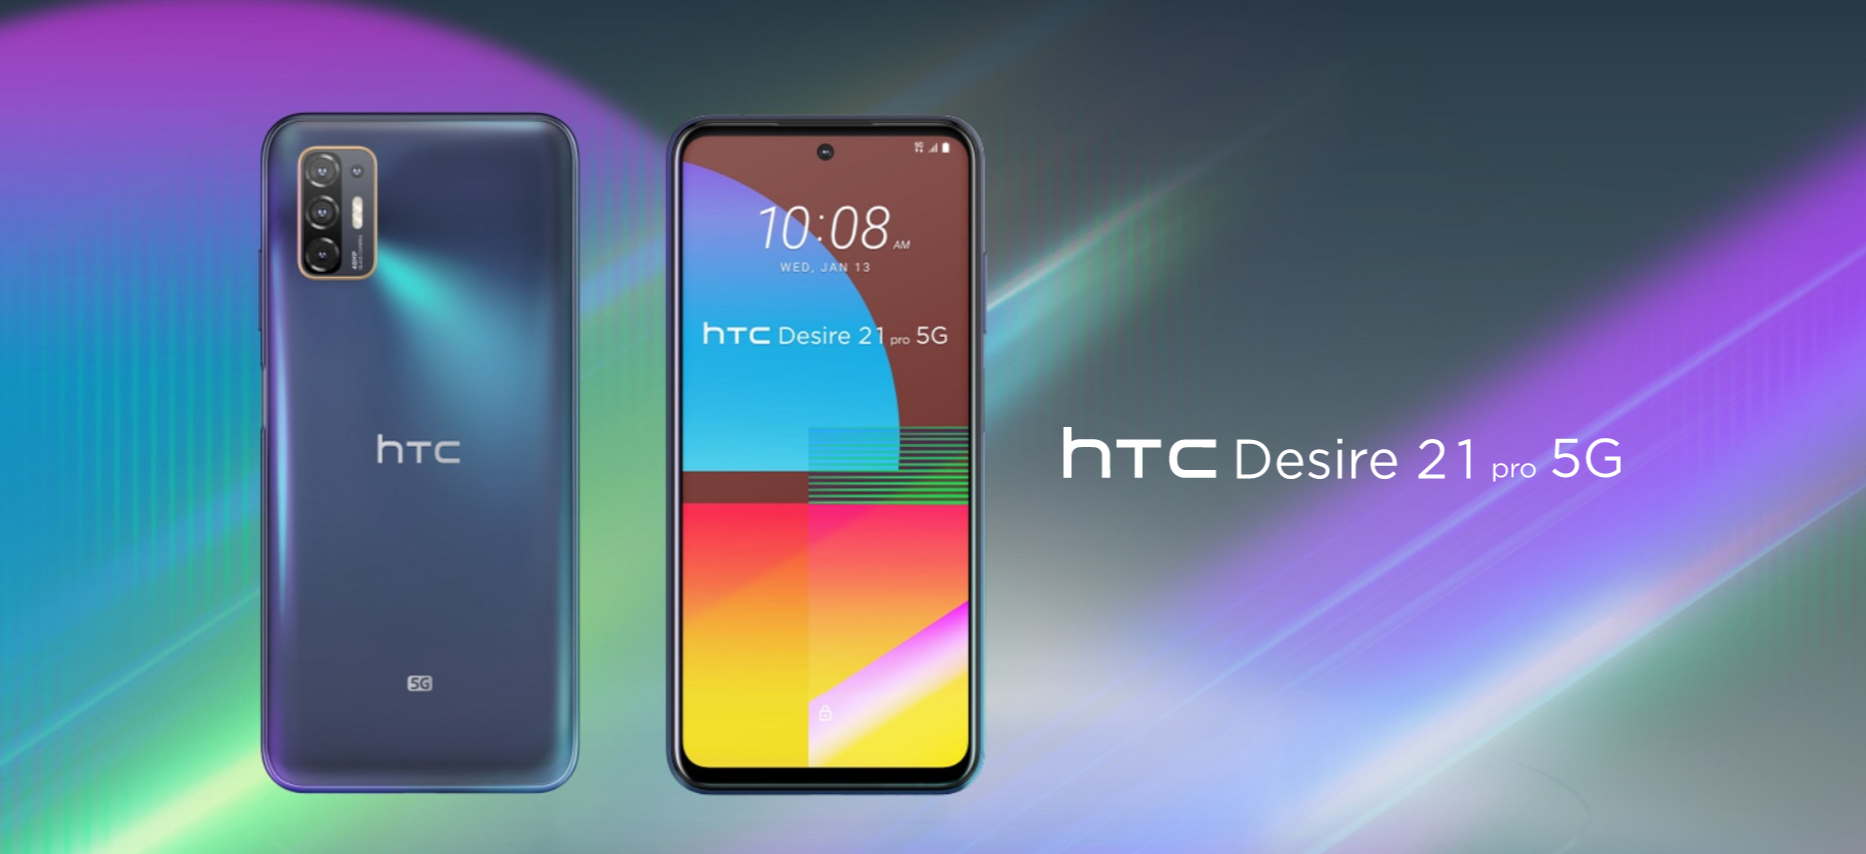 HTC launches the Desire 21 Pro 5G with a questionable price for its specs -  NotebookCheck.net News